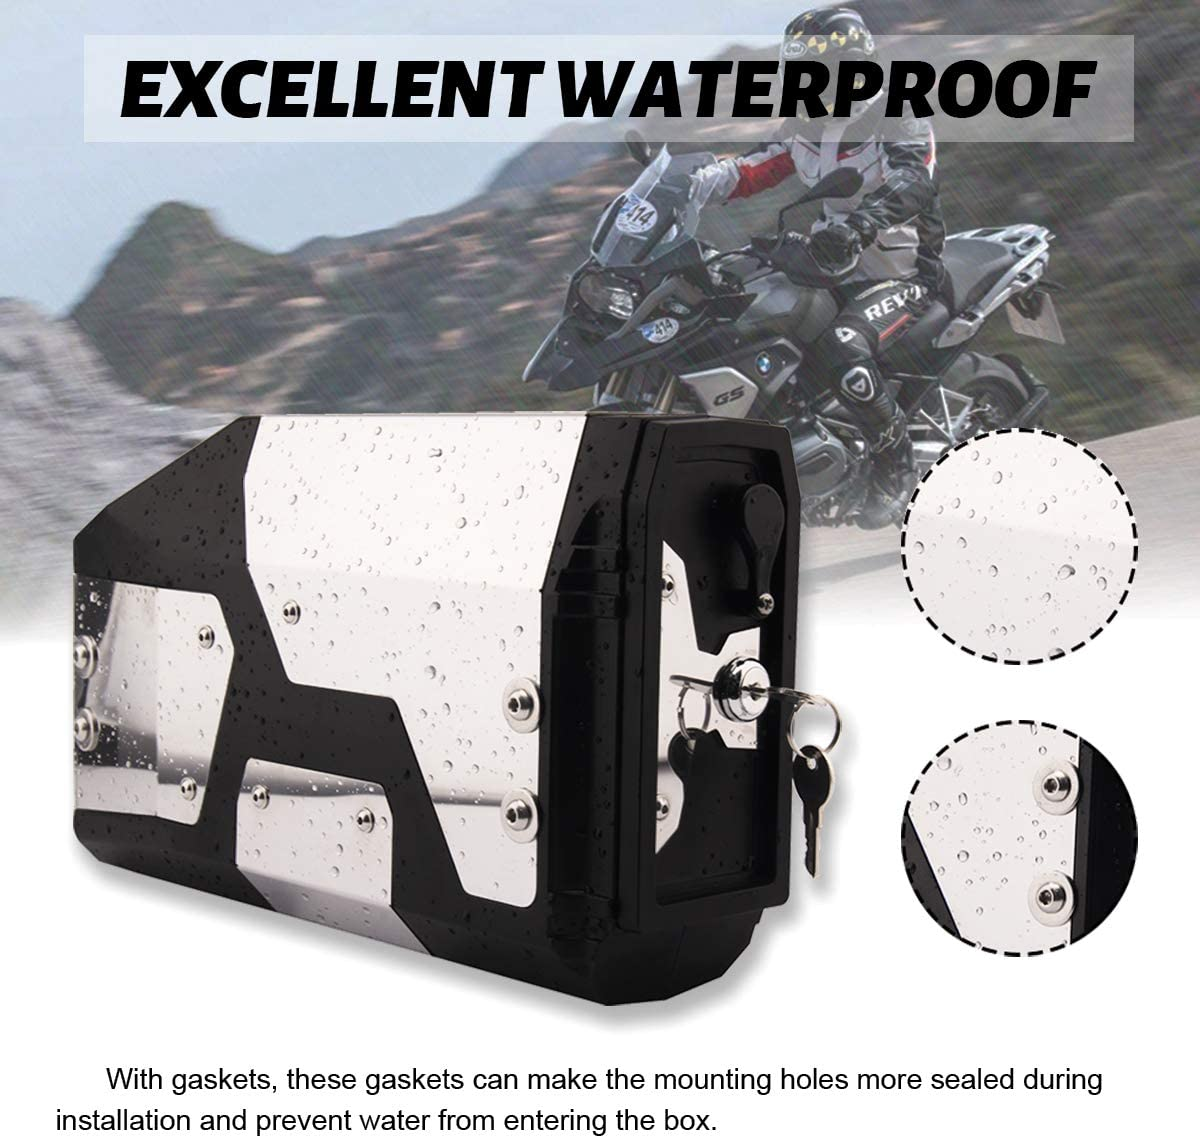 2002 2008 2018 2019 Motorcycle Side Box Stainless Steel Tool Box Water-proof Side Case for BMW R1200GS R1250GS LC Adventure /& F750 F850 BMW Motorcycle Accessories